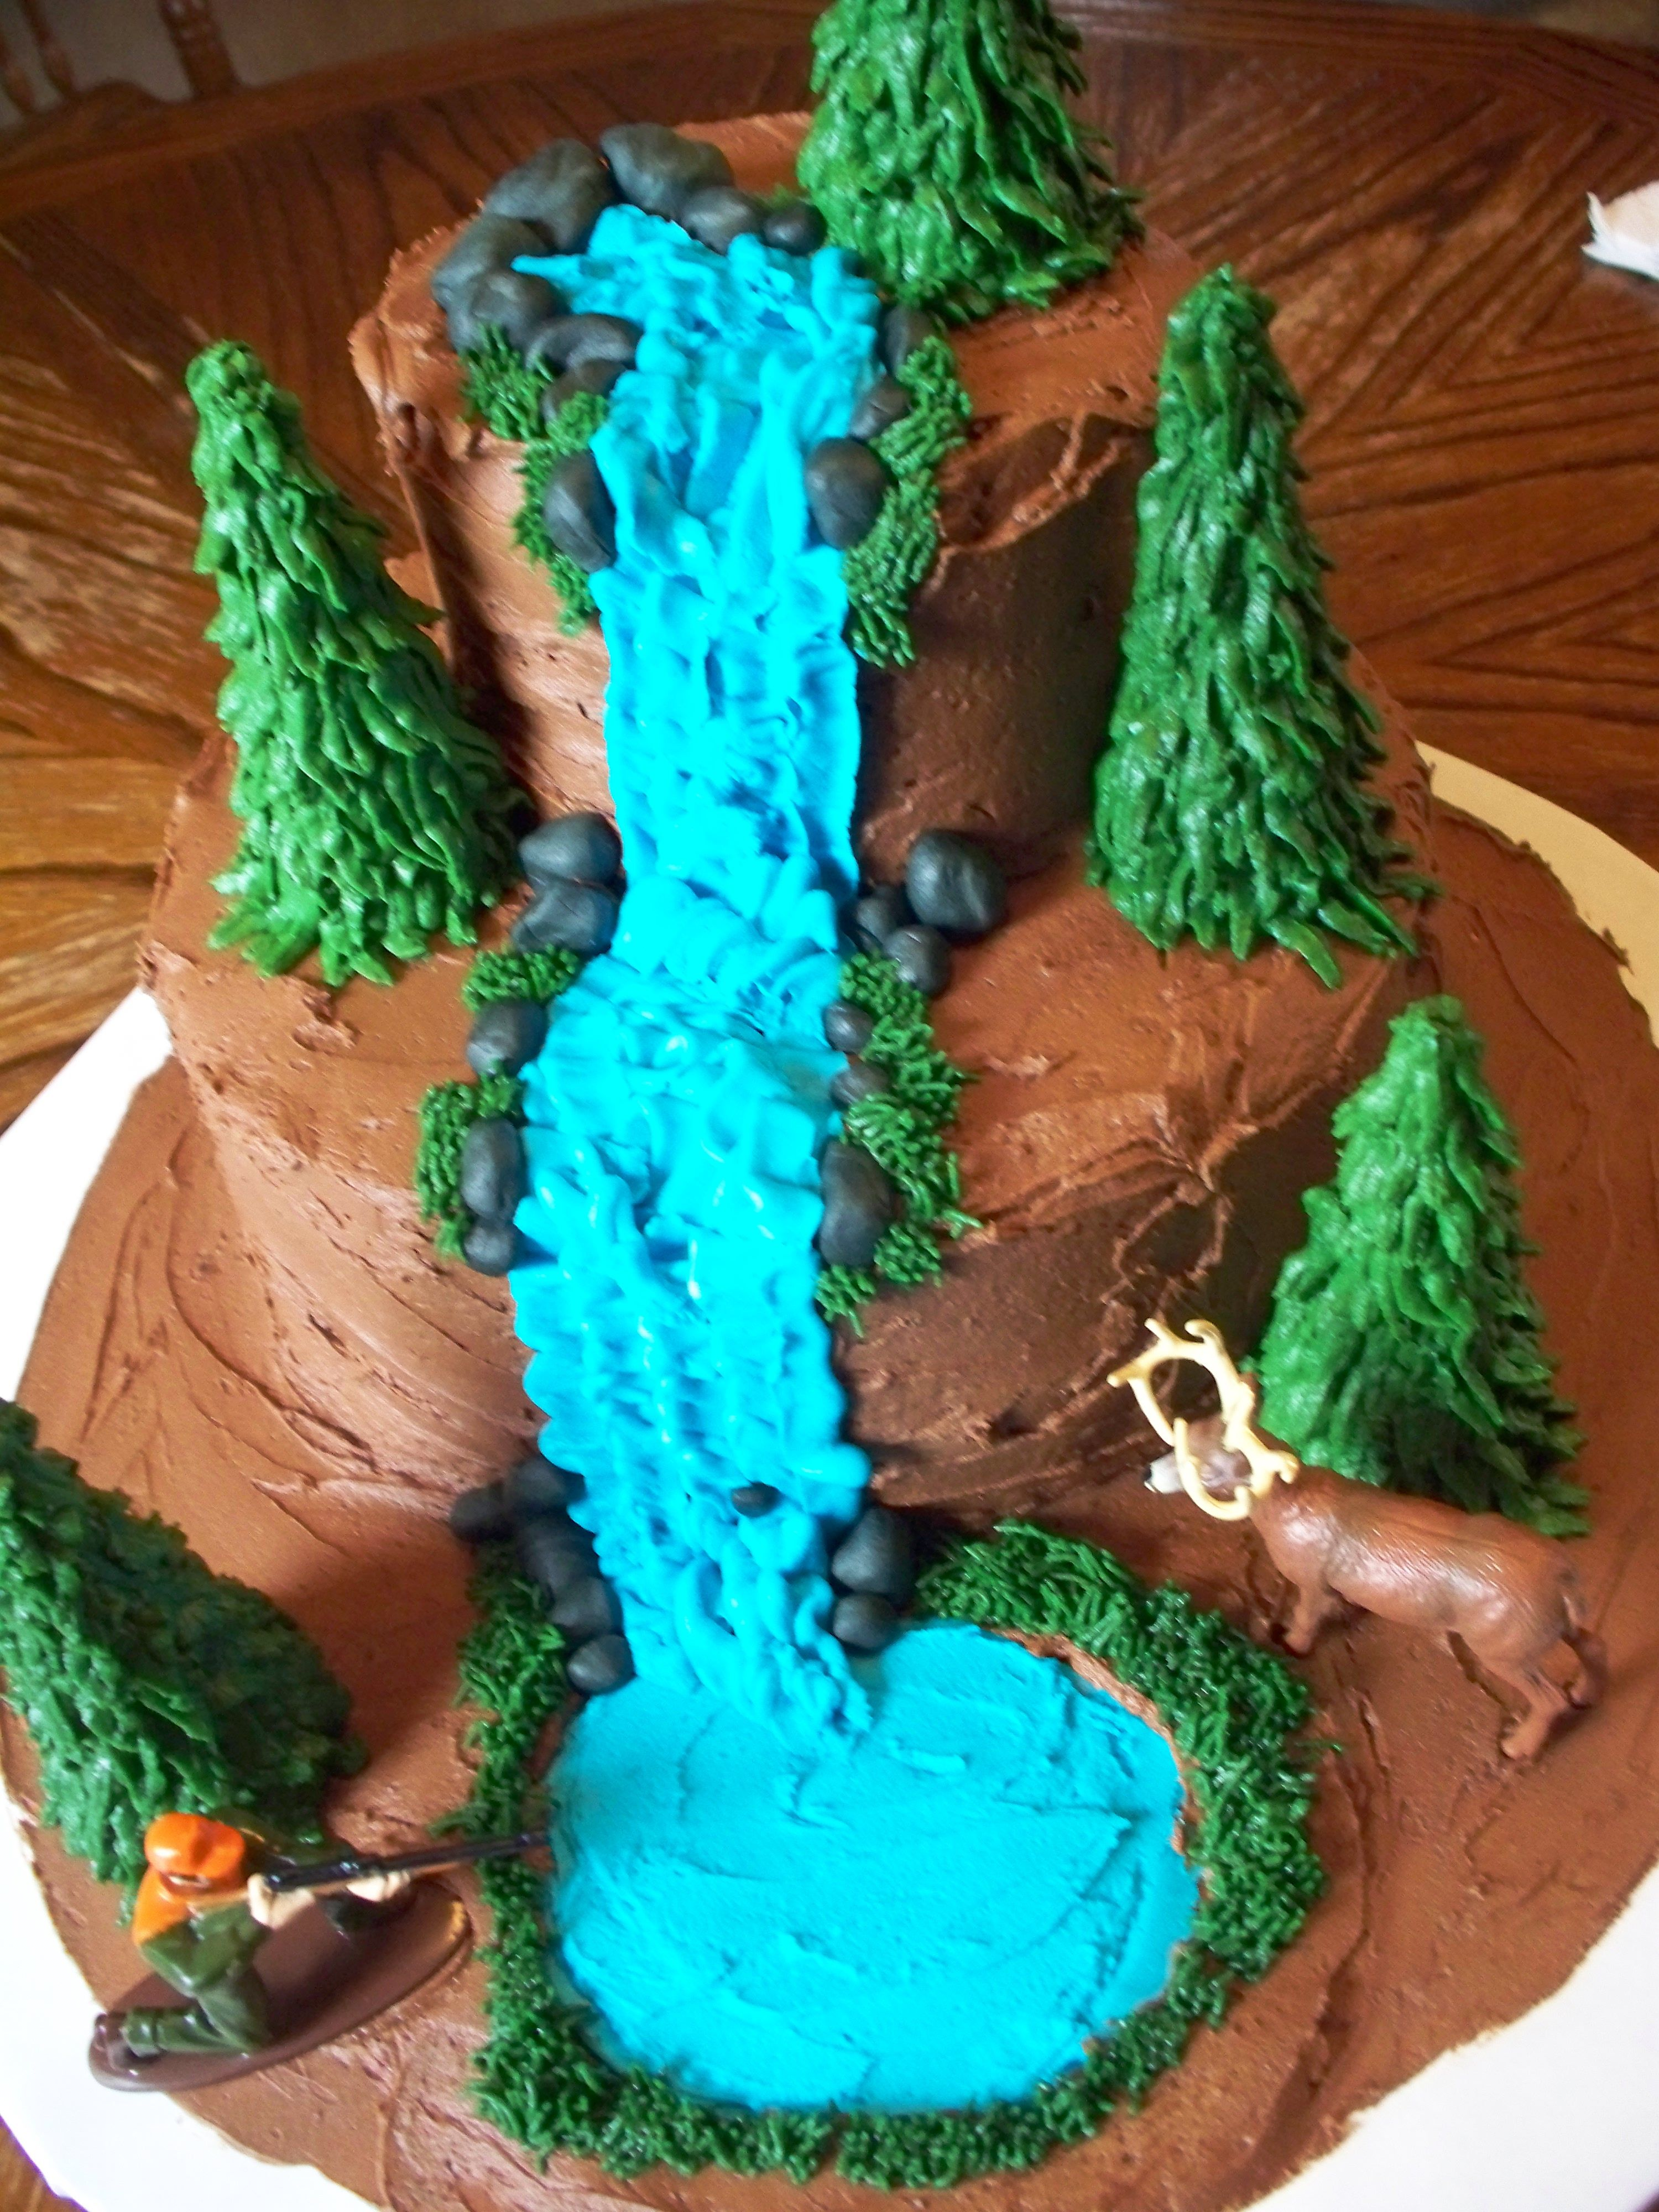 How To Make Fondant Stand Up On Cakes